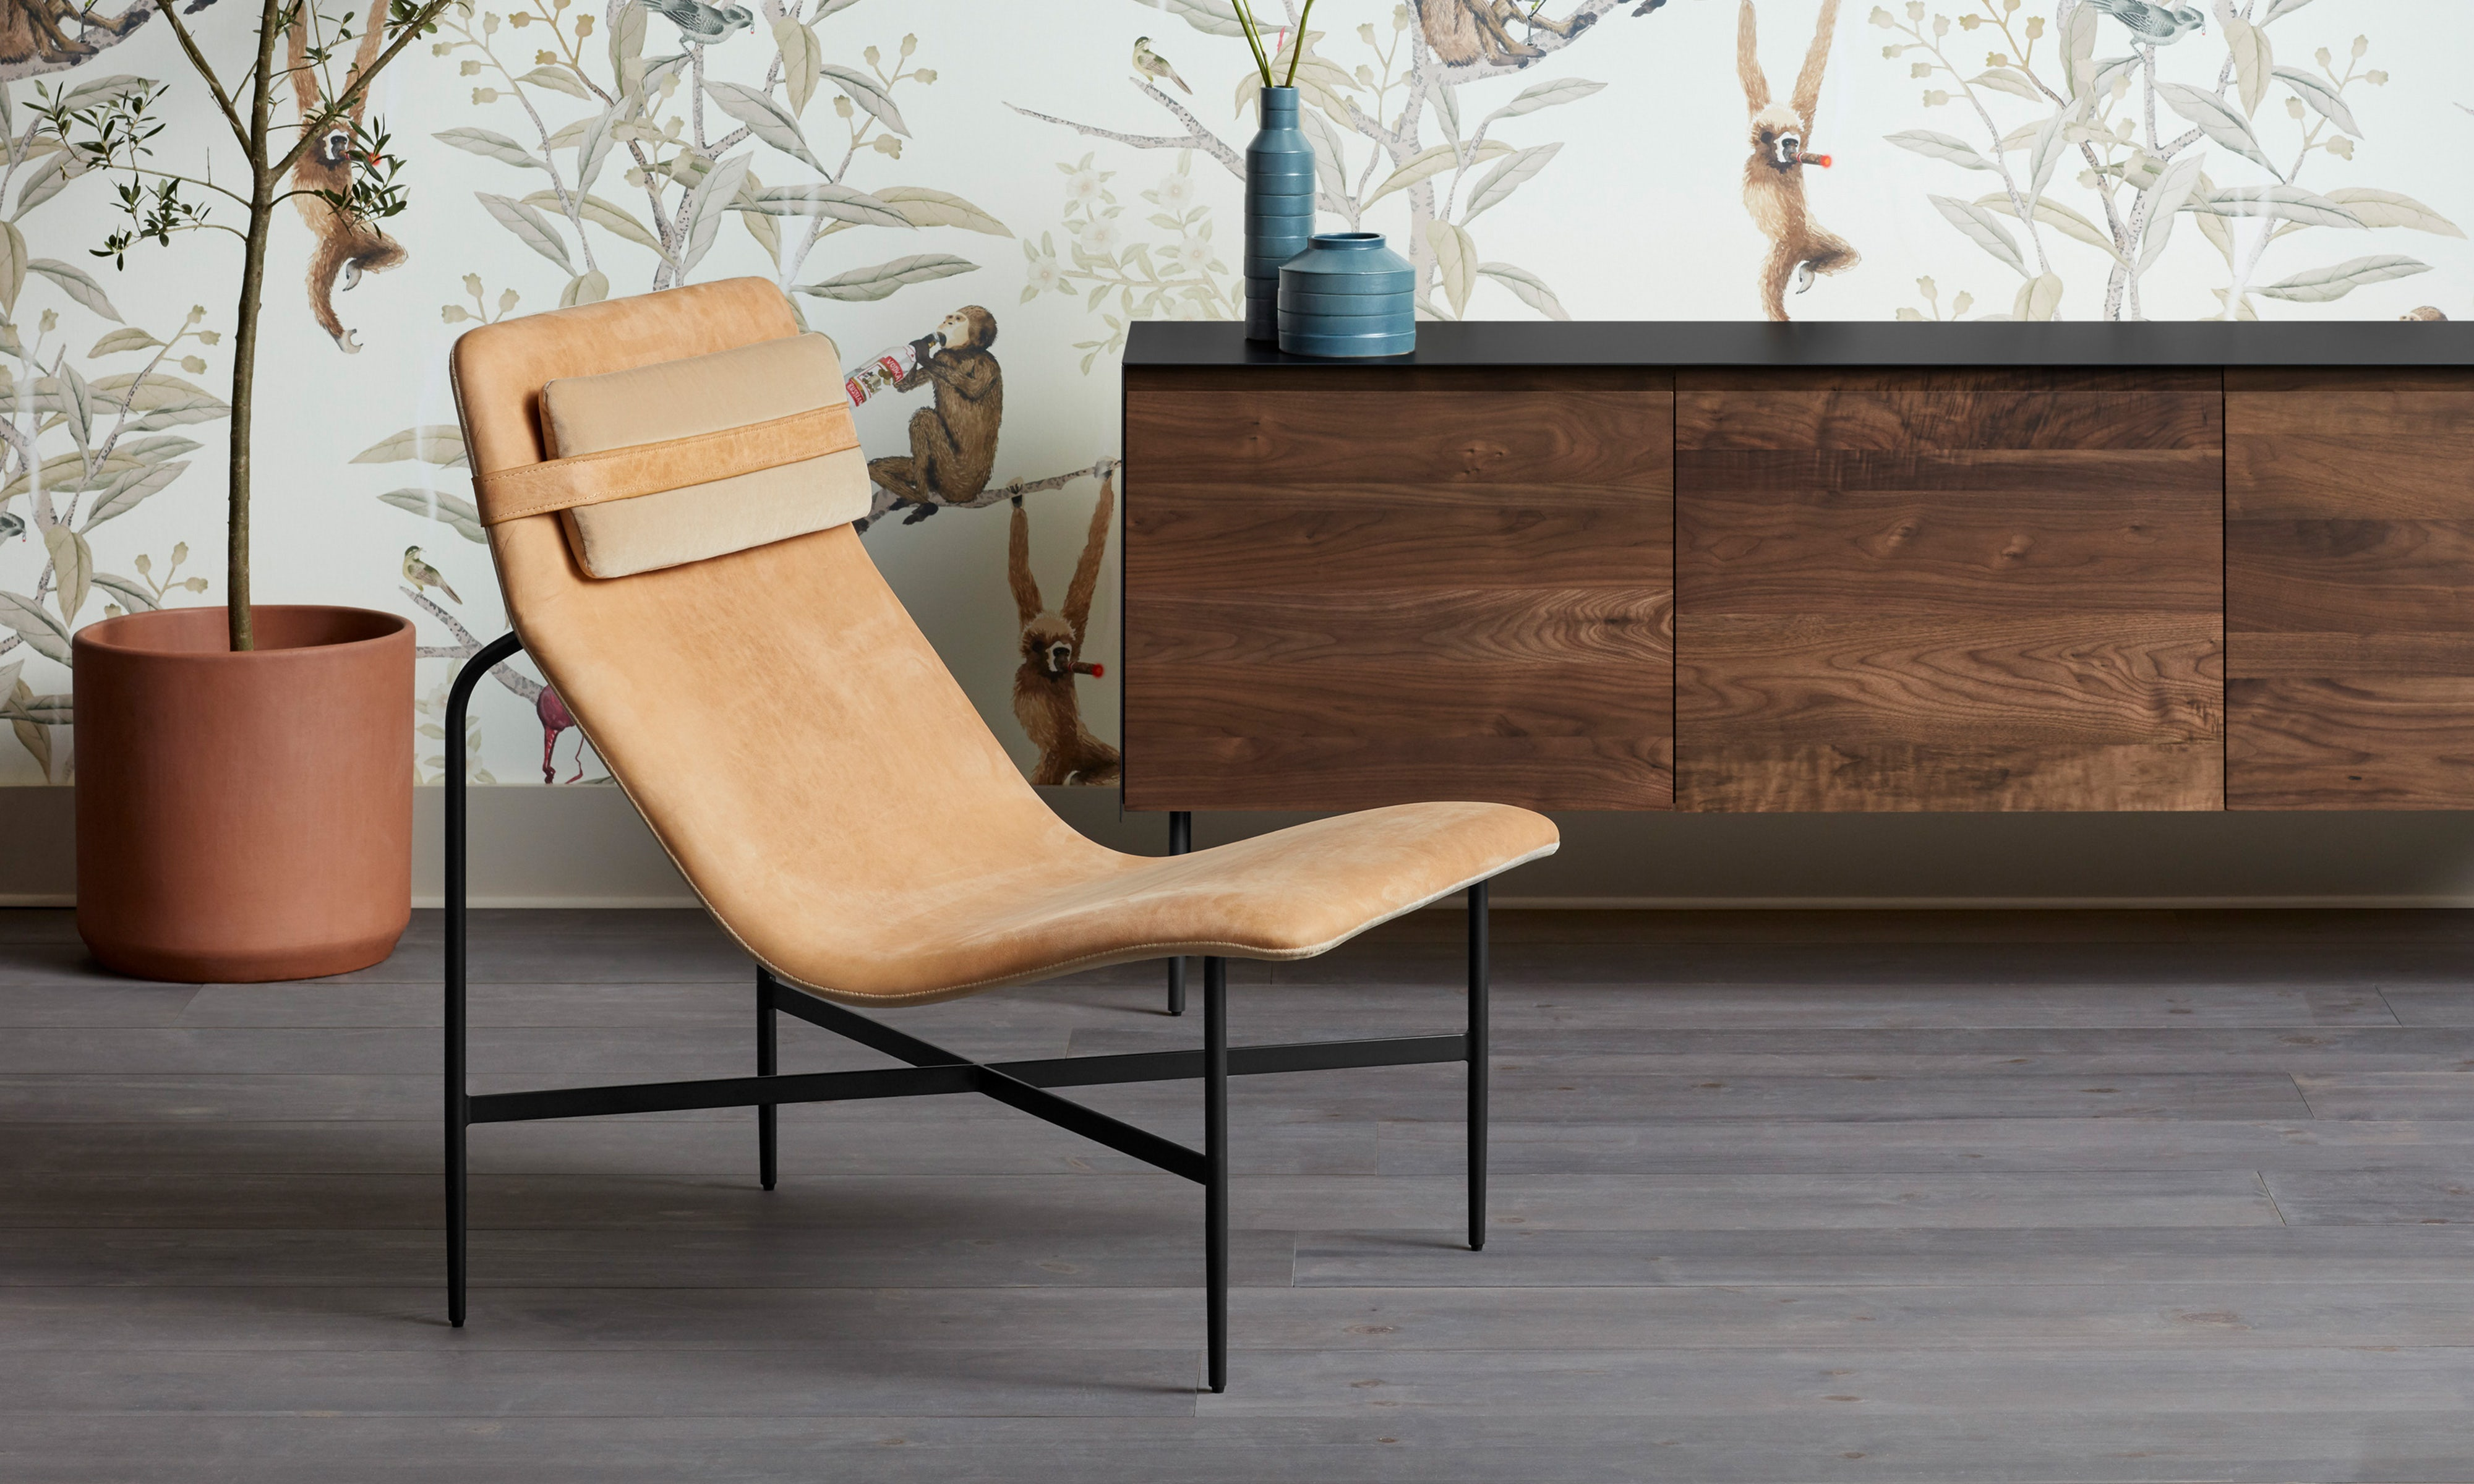 Tremendous Deep Thoughts Leather Lounge Chair Andrewgaddart Wooden Chair Designs For Living Room Andrewgaddartcom